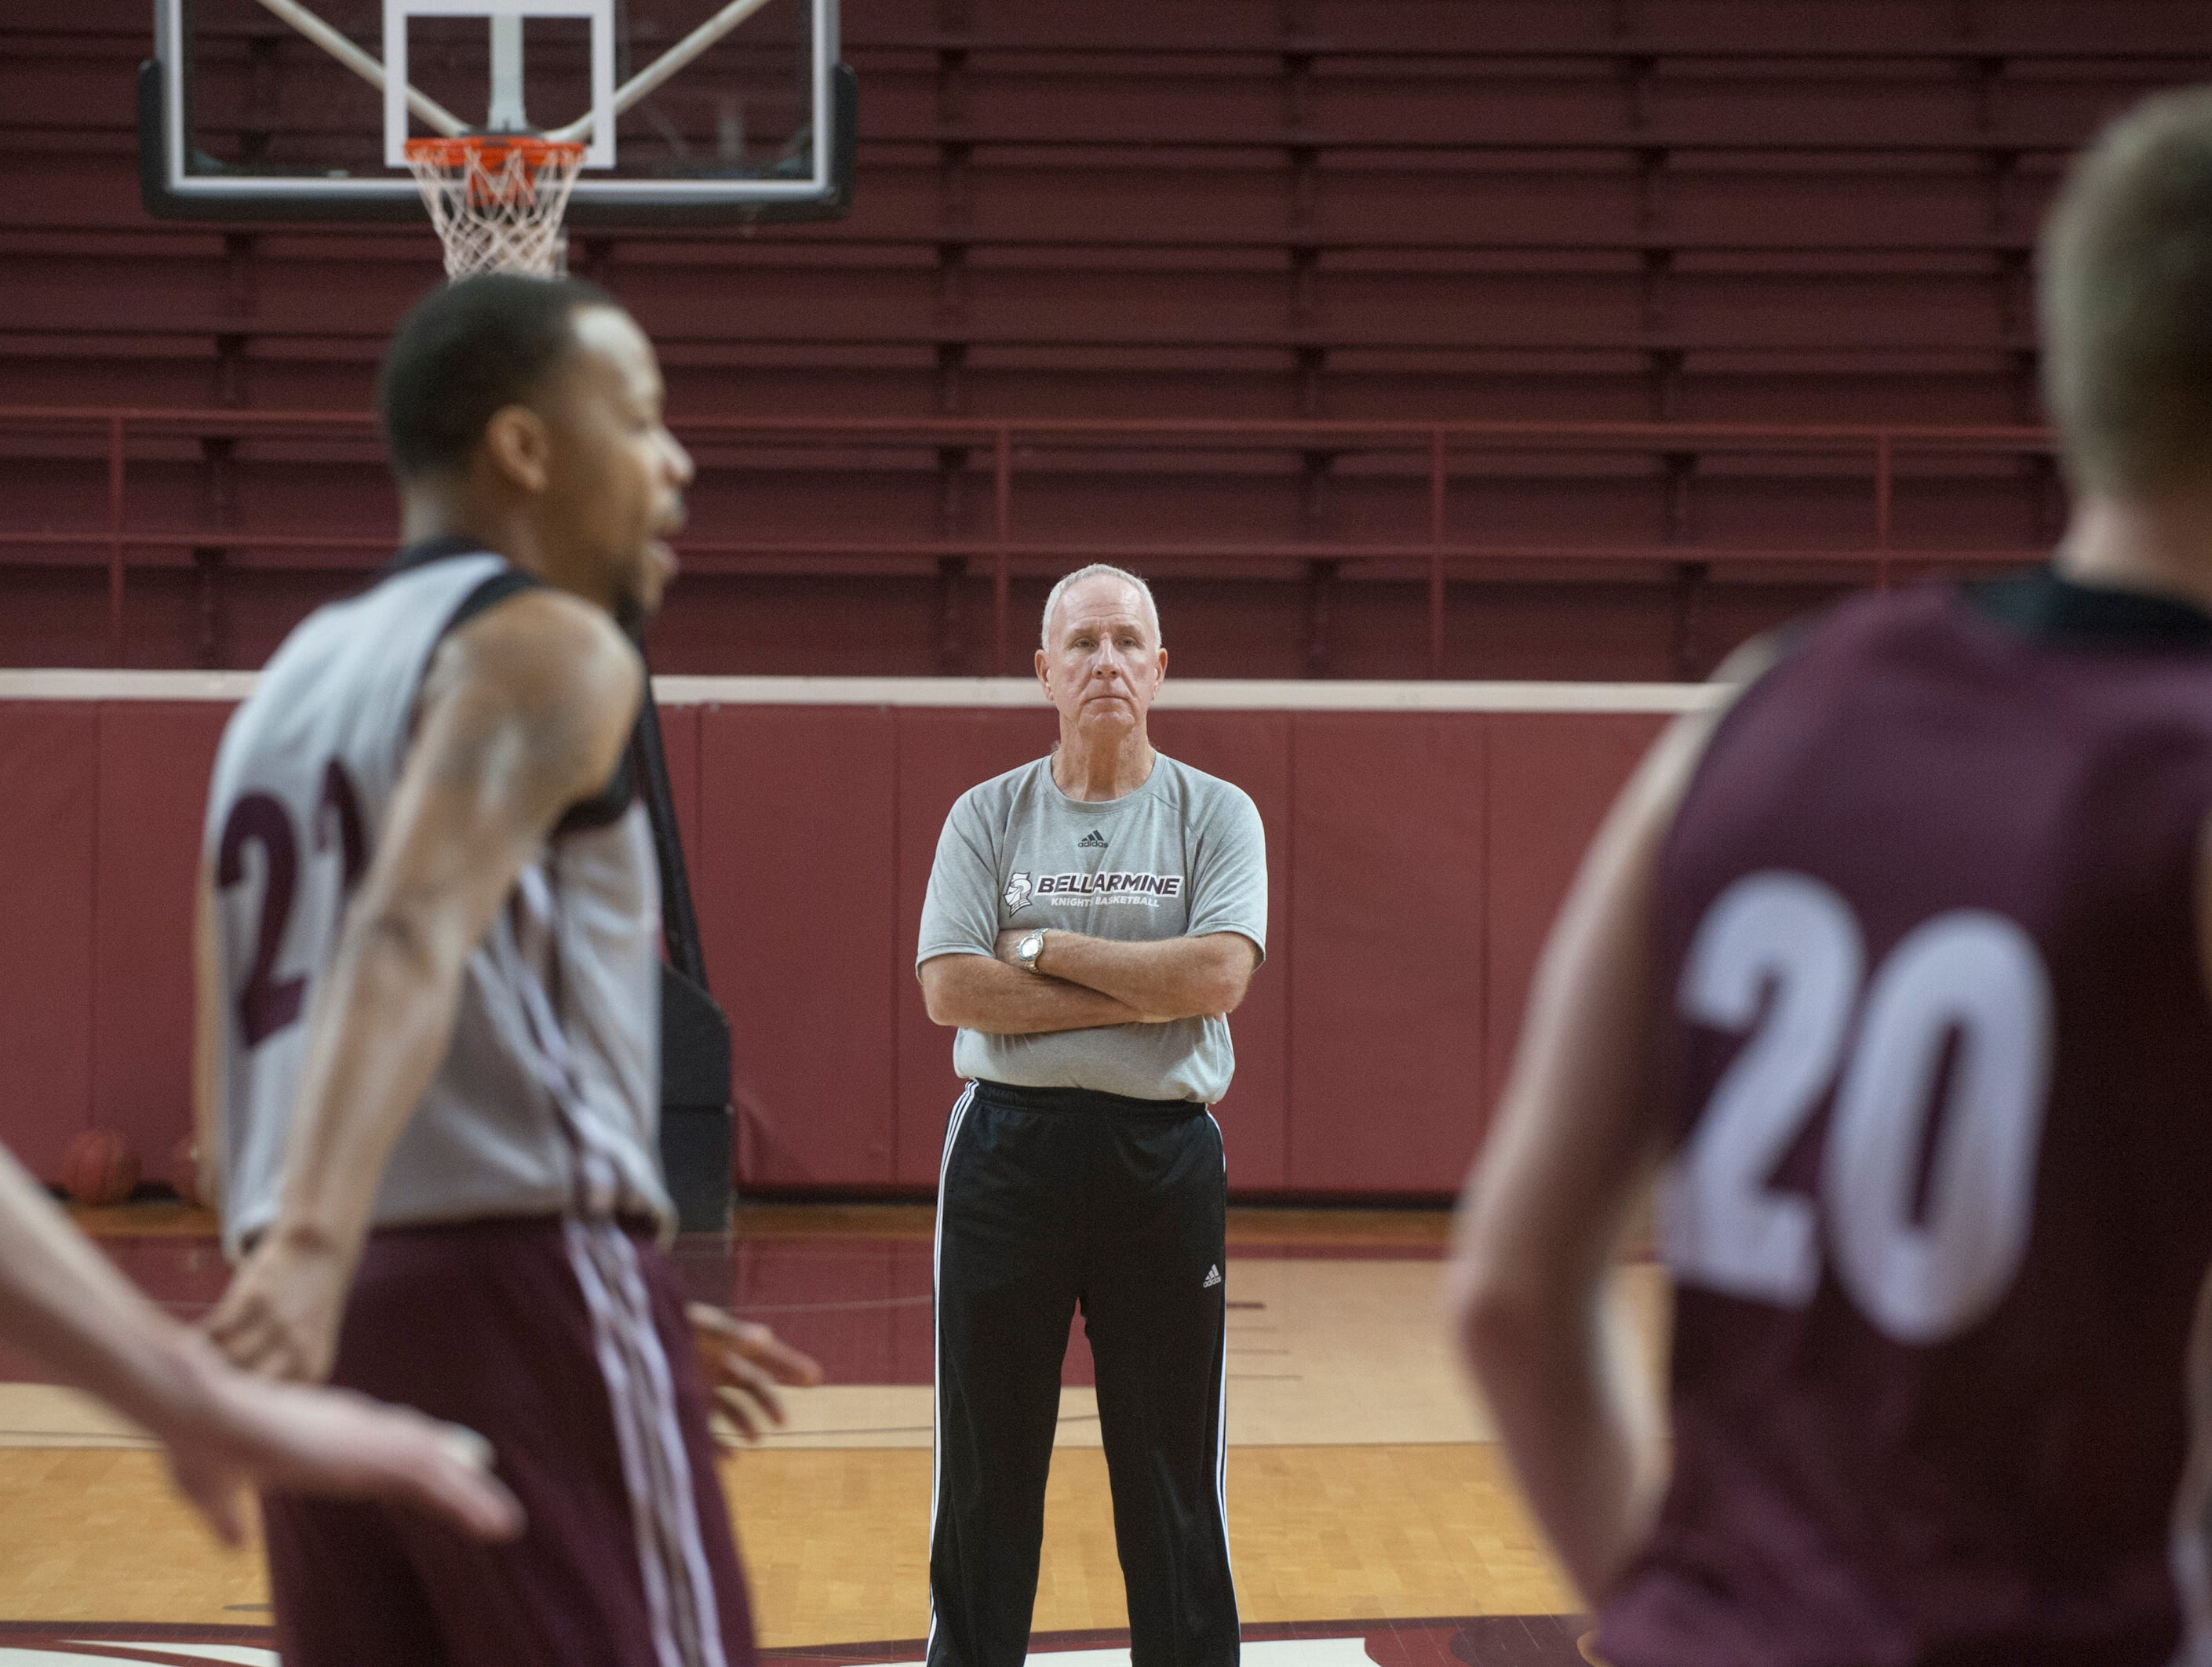 Bellarmine Knights head basketball coach Scott Davenport, in his 14th season of coaching at Bellarmine, watches his players during a practice drill at the university.18 December 2018